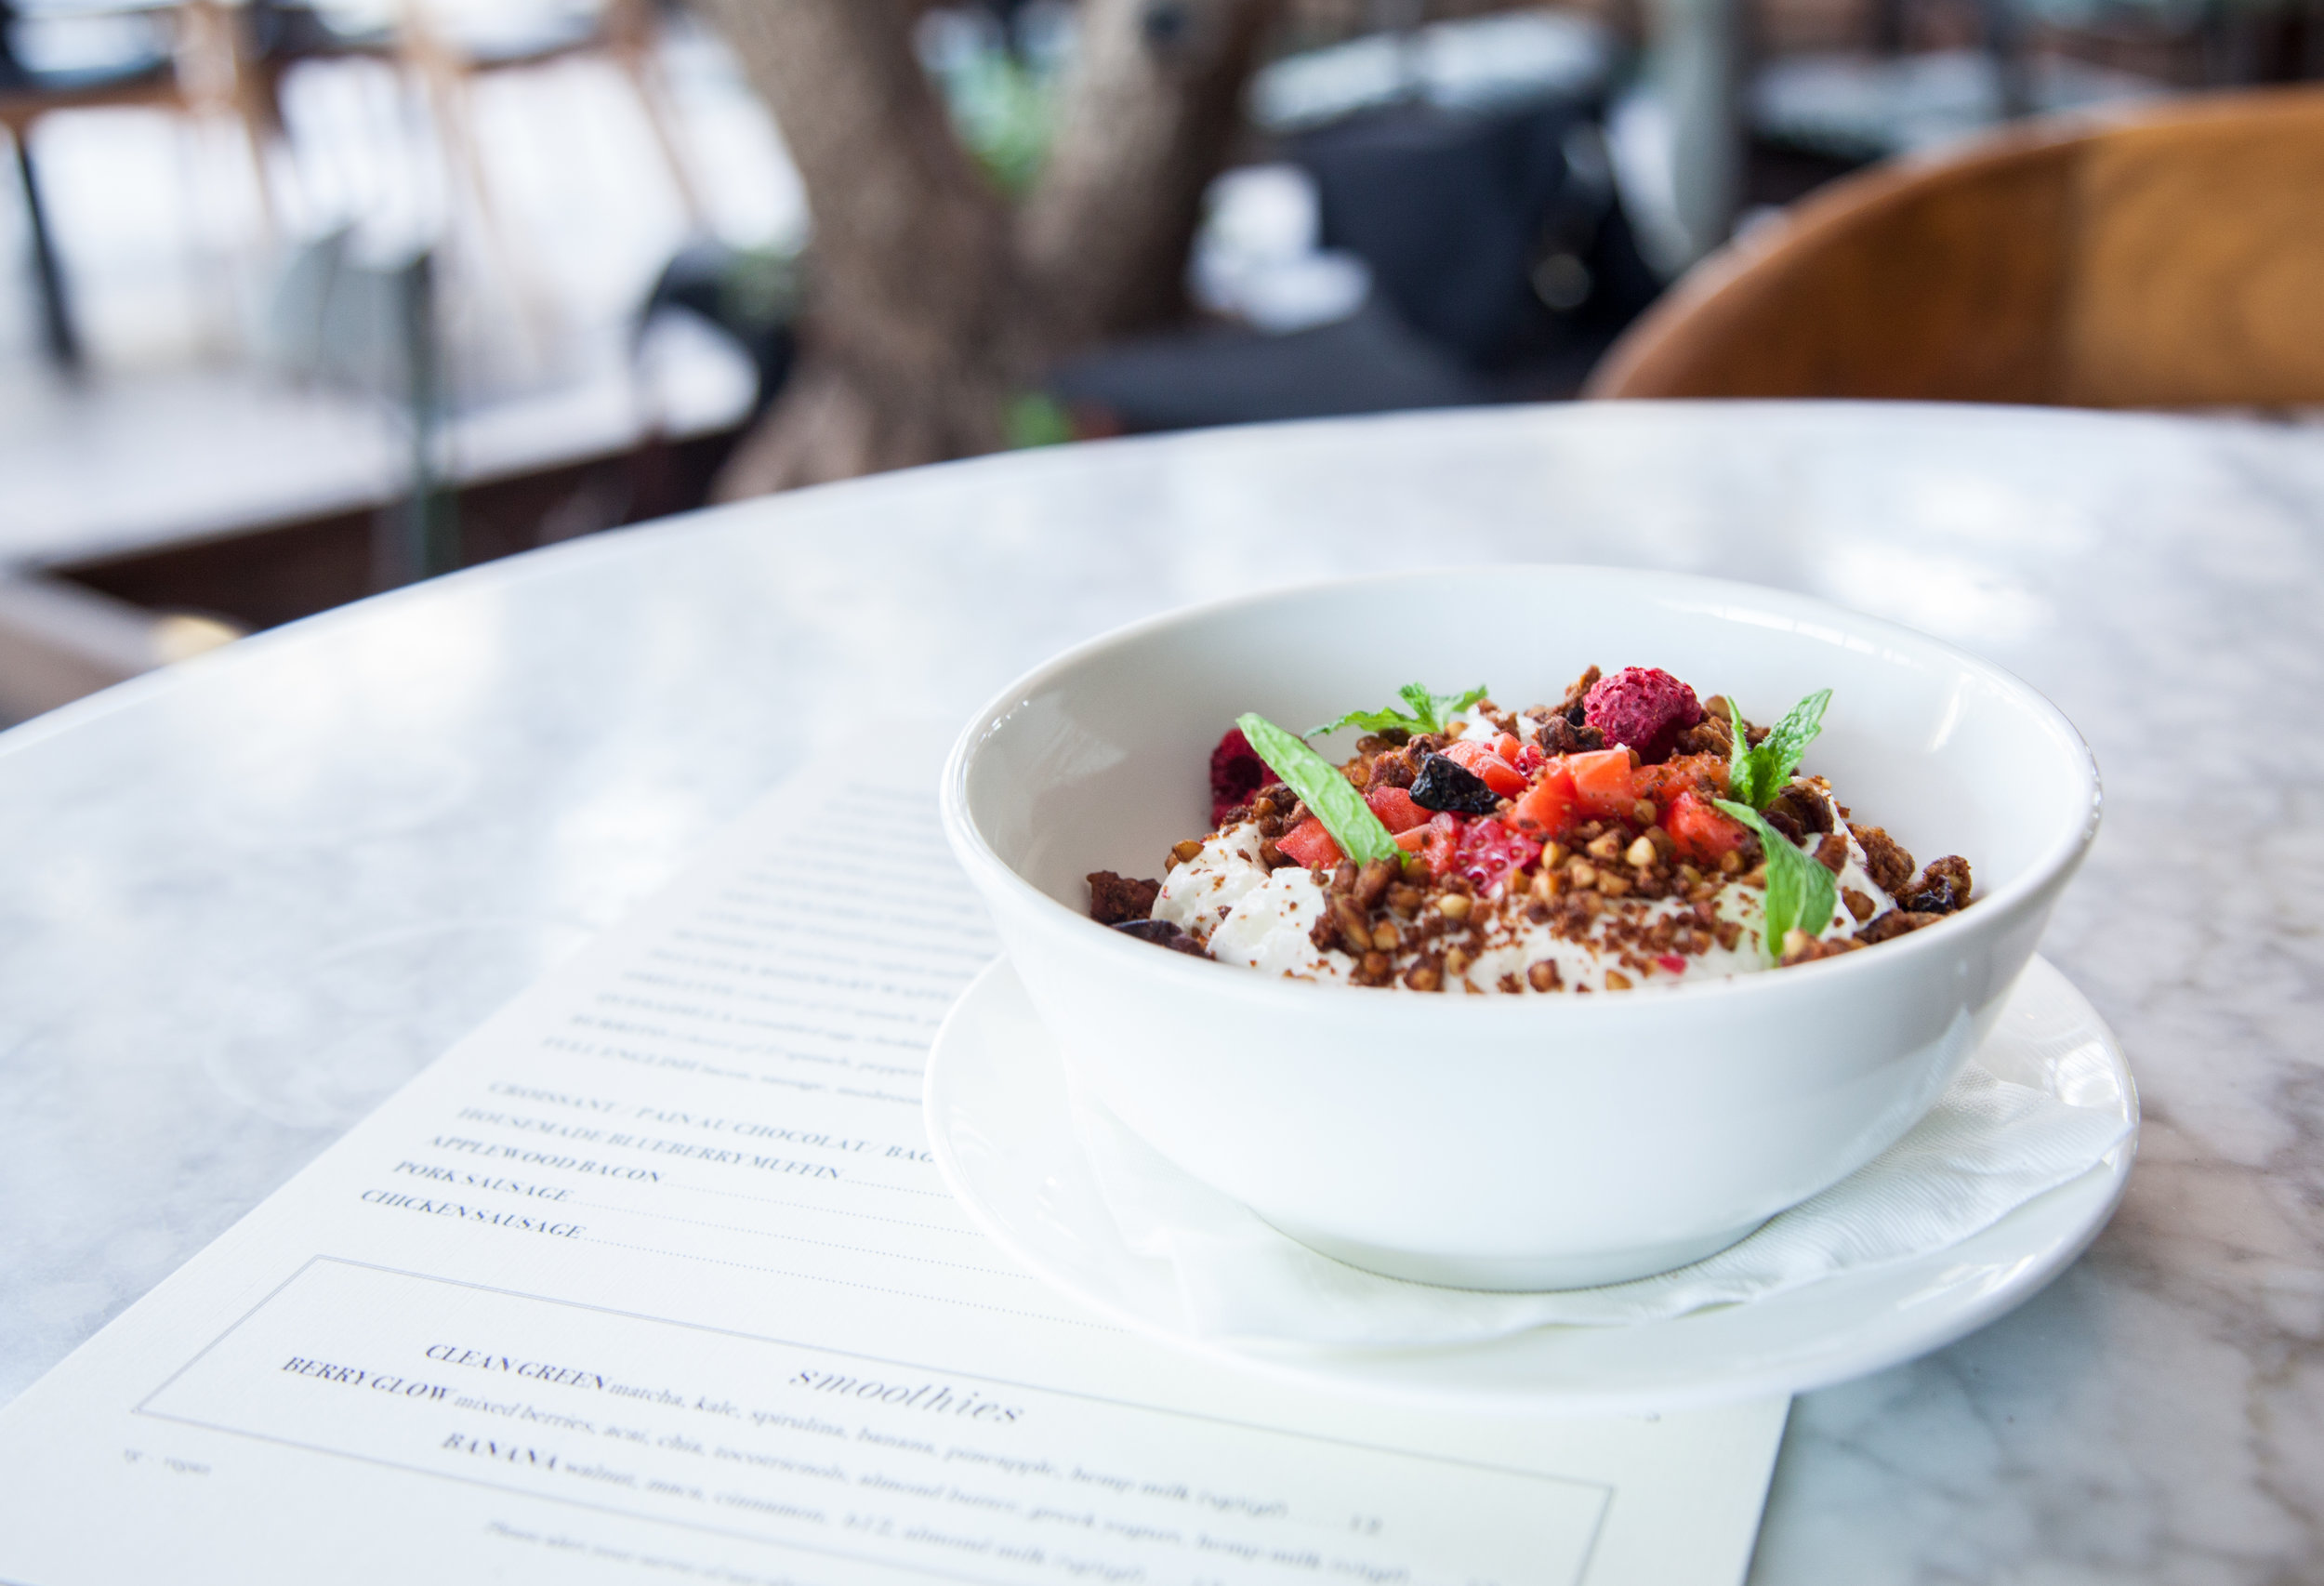 SOHO HOUSE BREAKFAST ITEMS-7.jpg